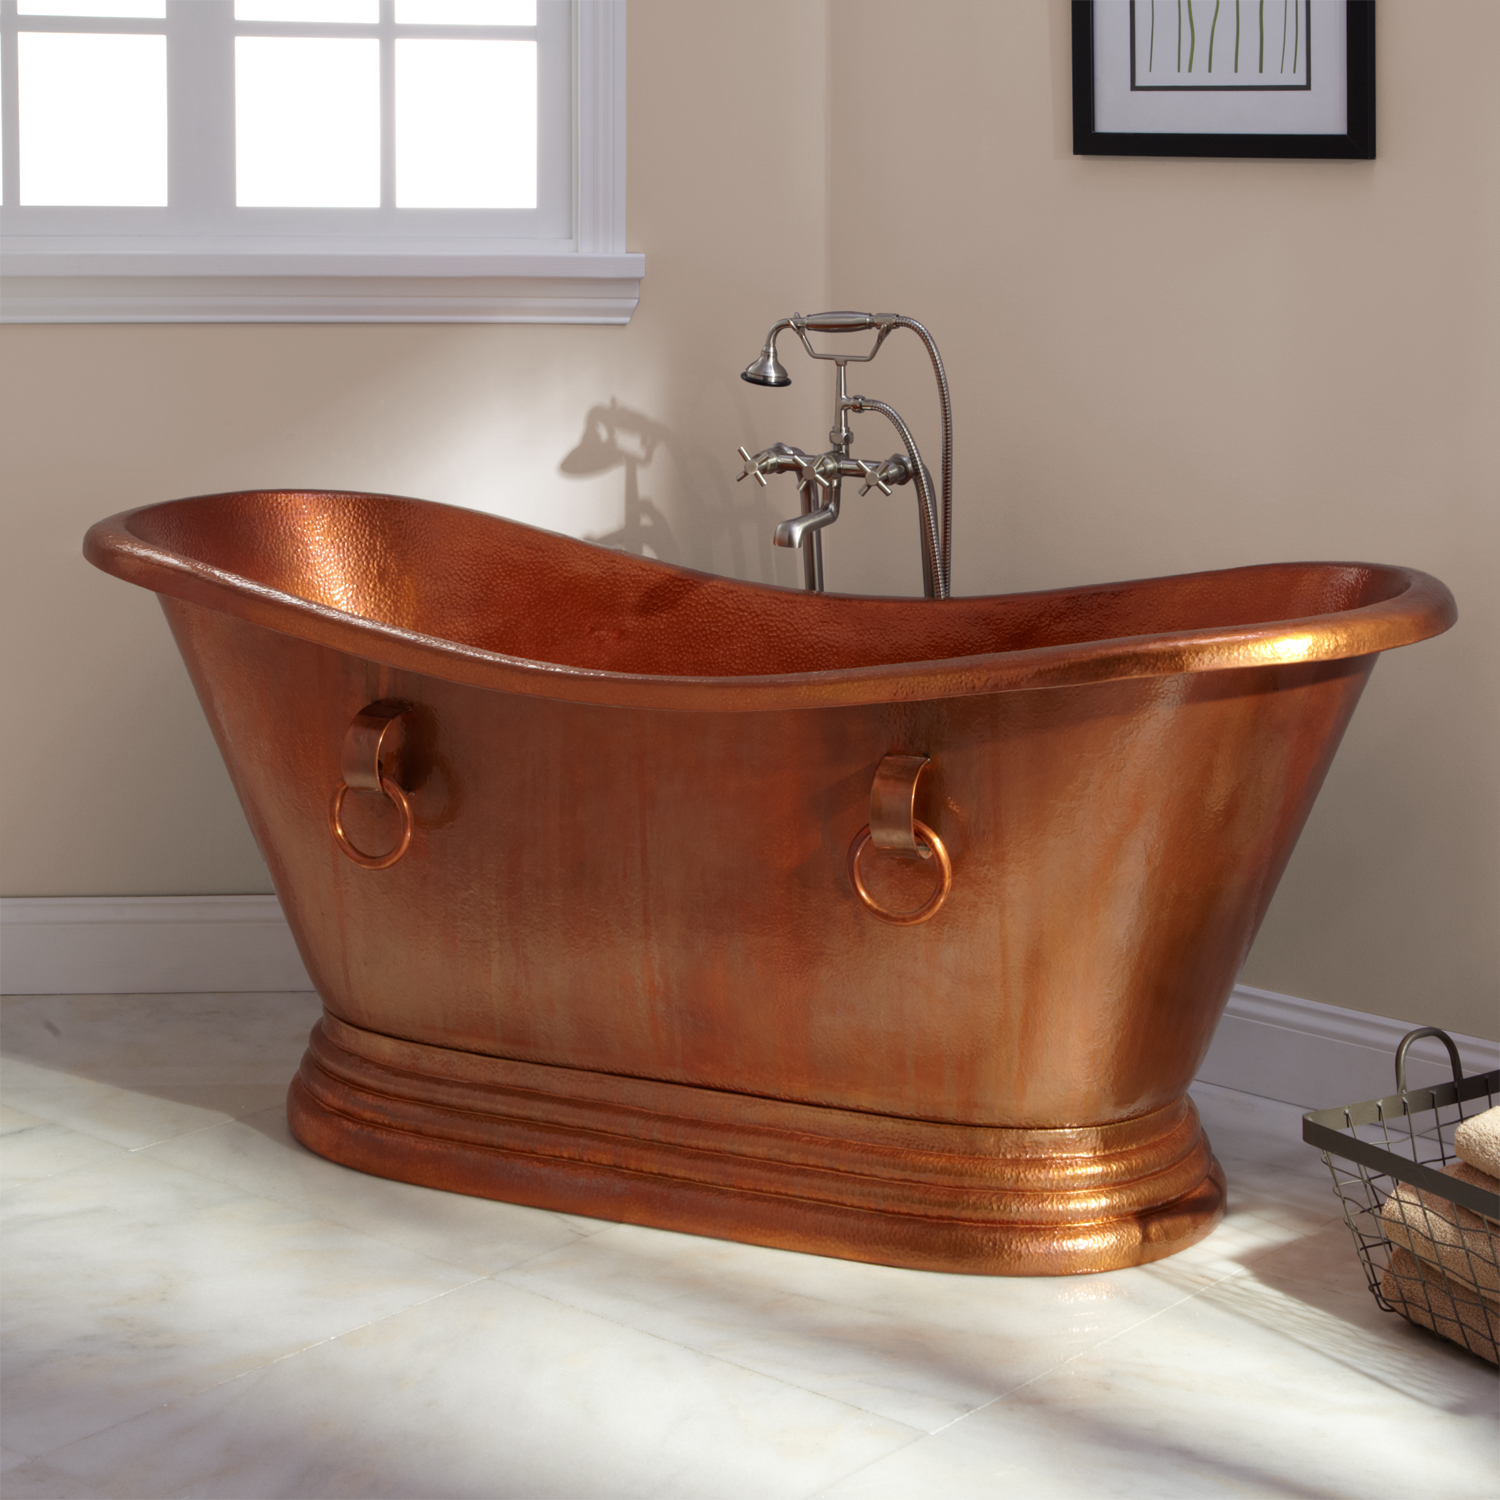 Thefrontdrawer freestanding bathtubs styles and types for Different types of tubs